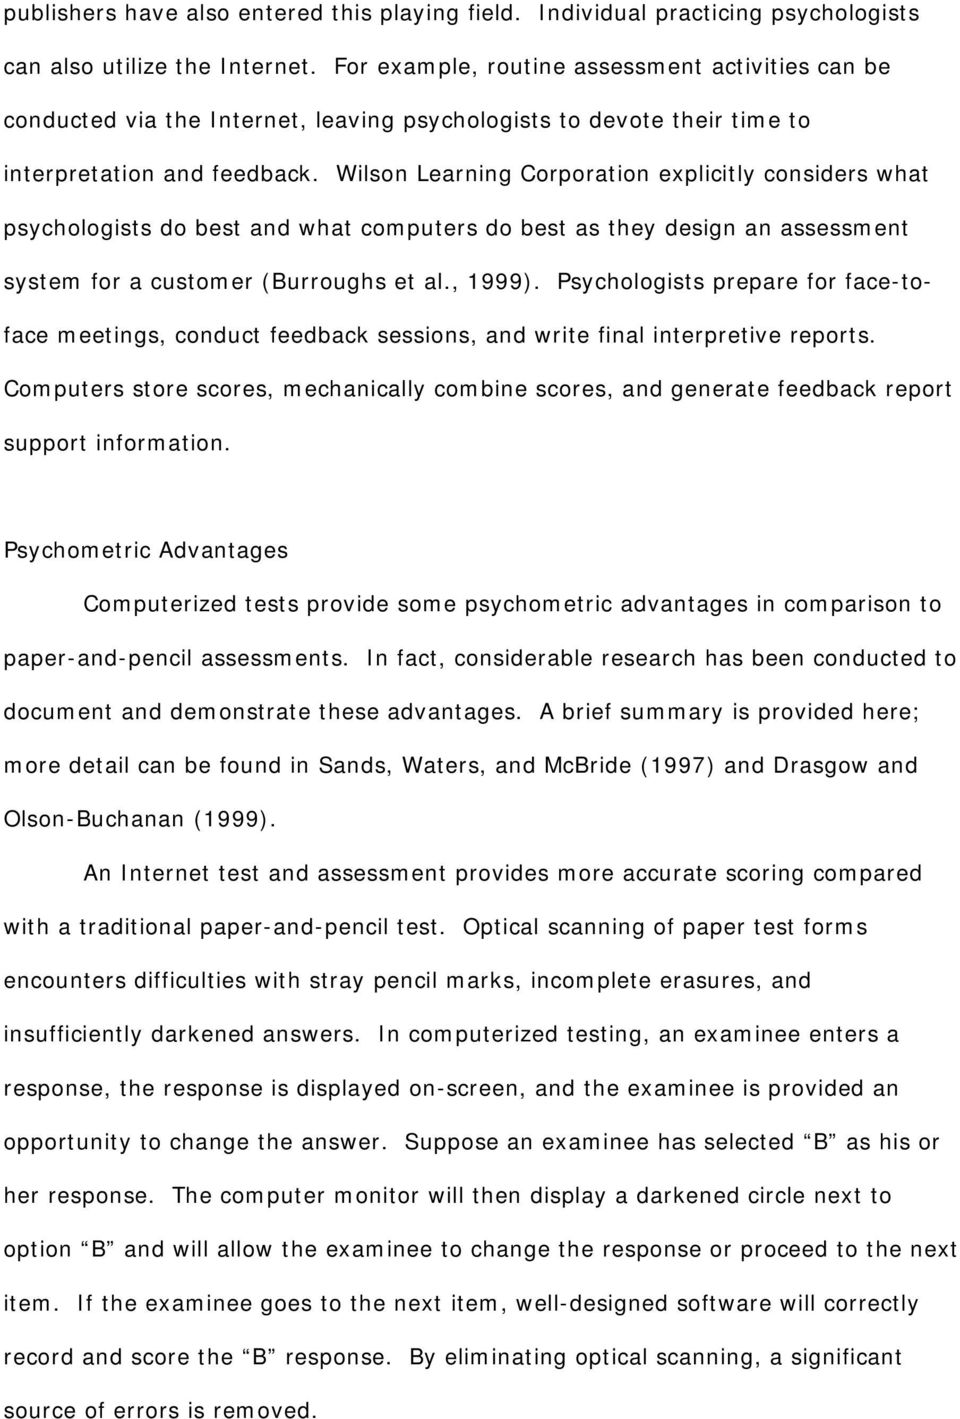 Wilson Learning Corporation explicitly considers what psychologists do best and what computers do best as they design an assessment system for a customer (Burroughs et al., 1999).